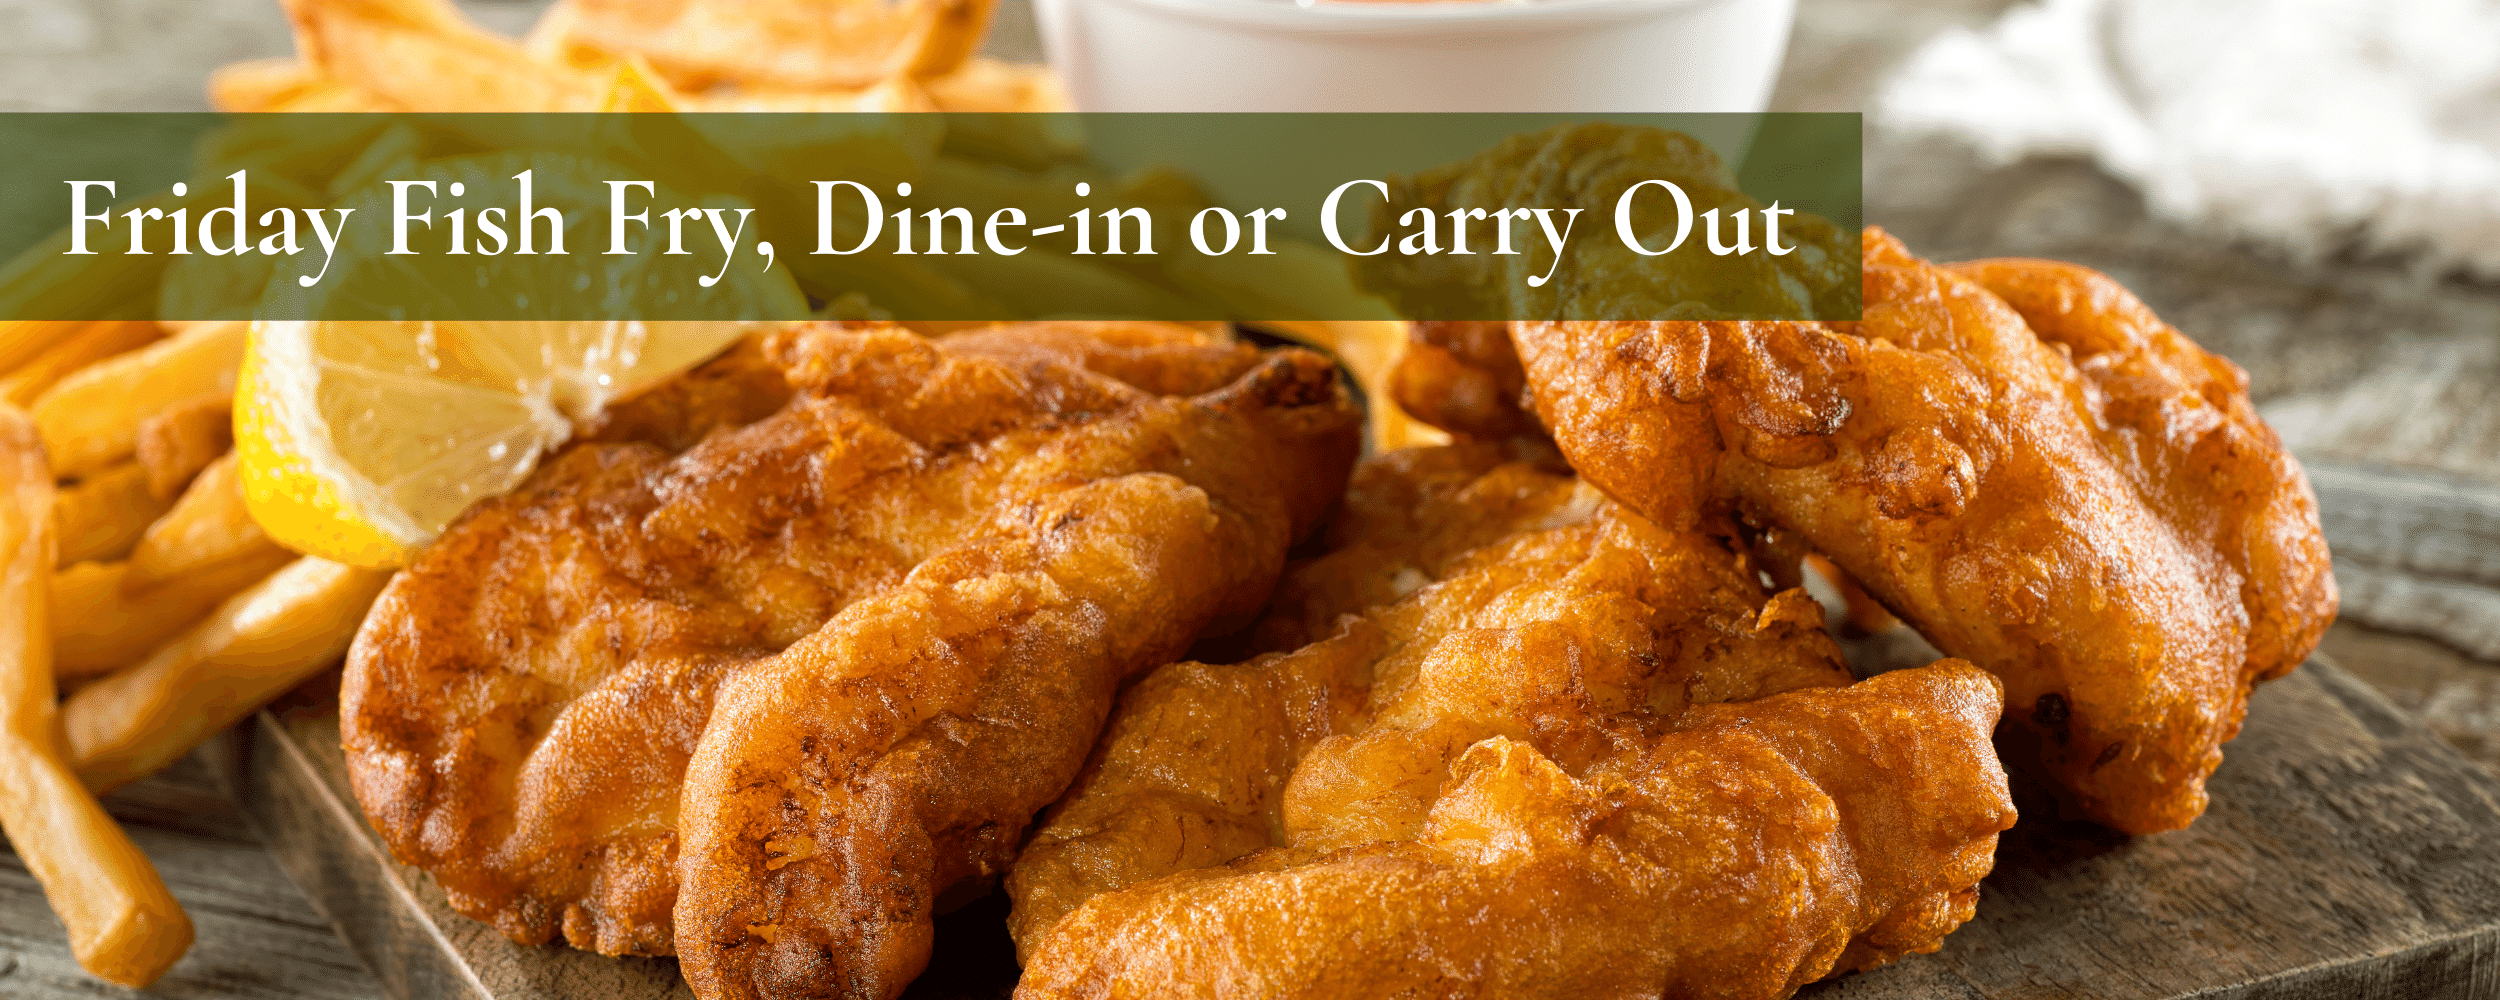 Friday Fish Fry, Dine-in or Carry Out